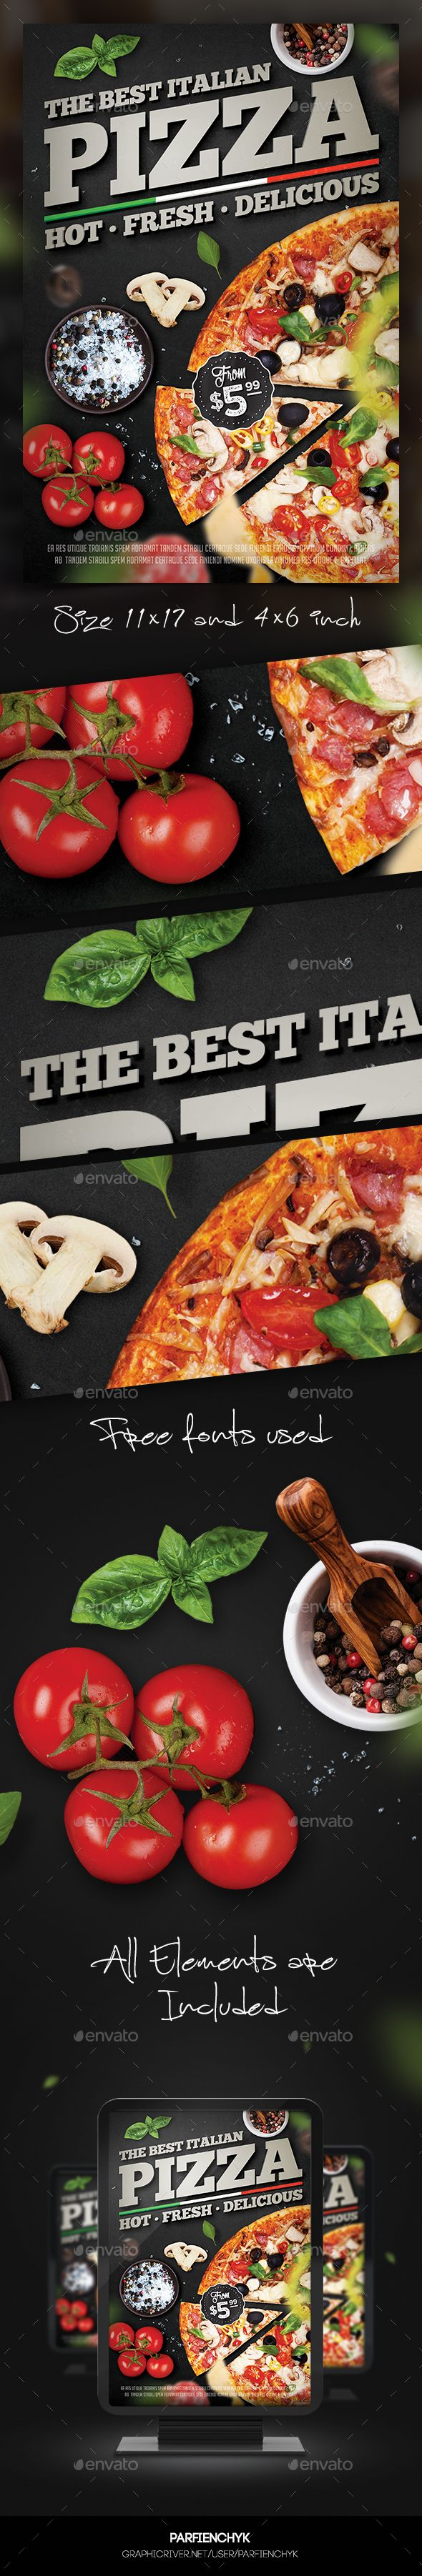 flyers pizza party trays carnaval jmsmusic co